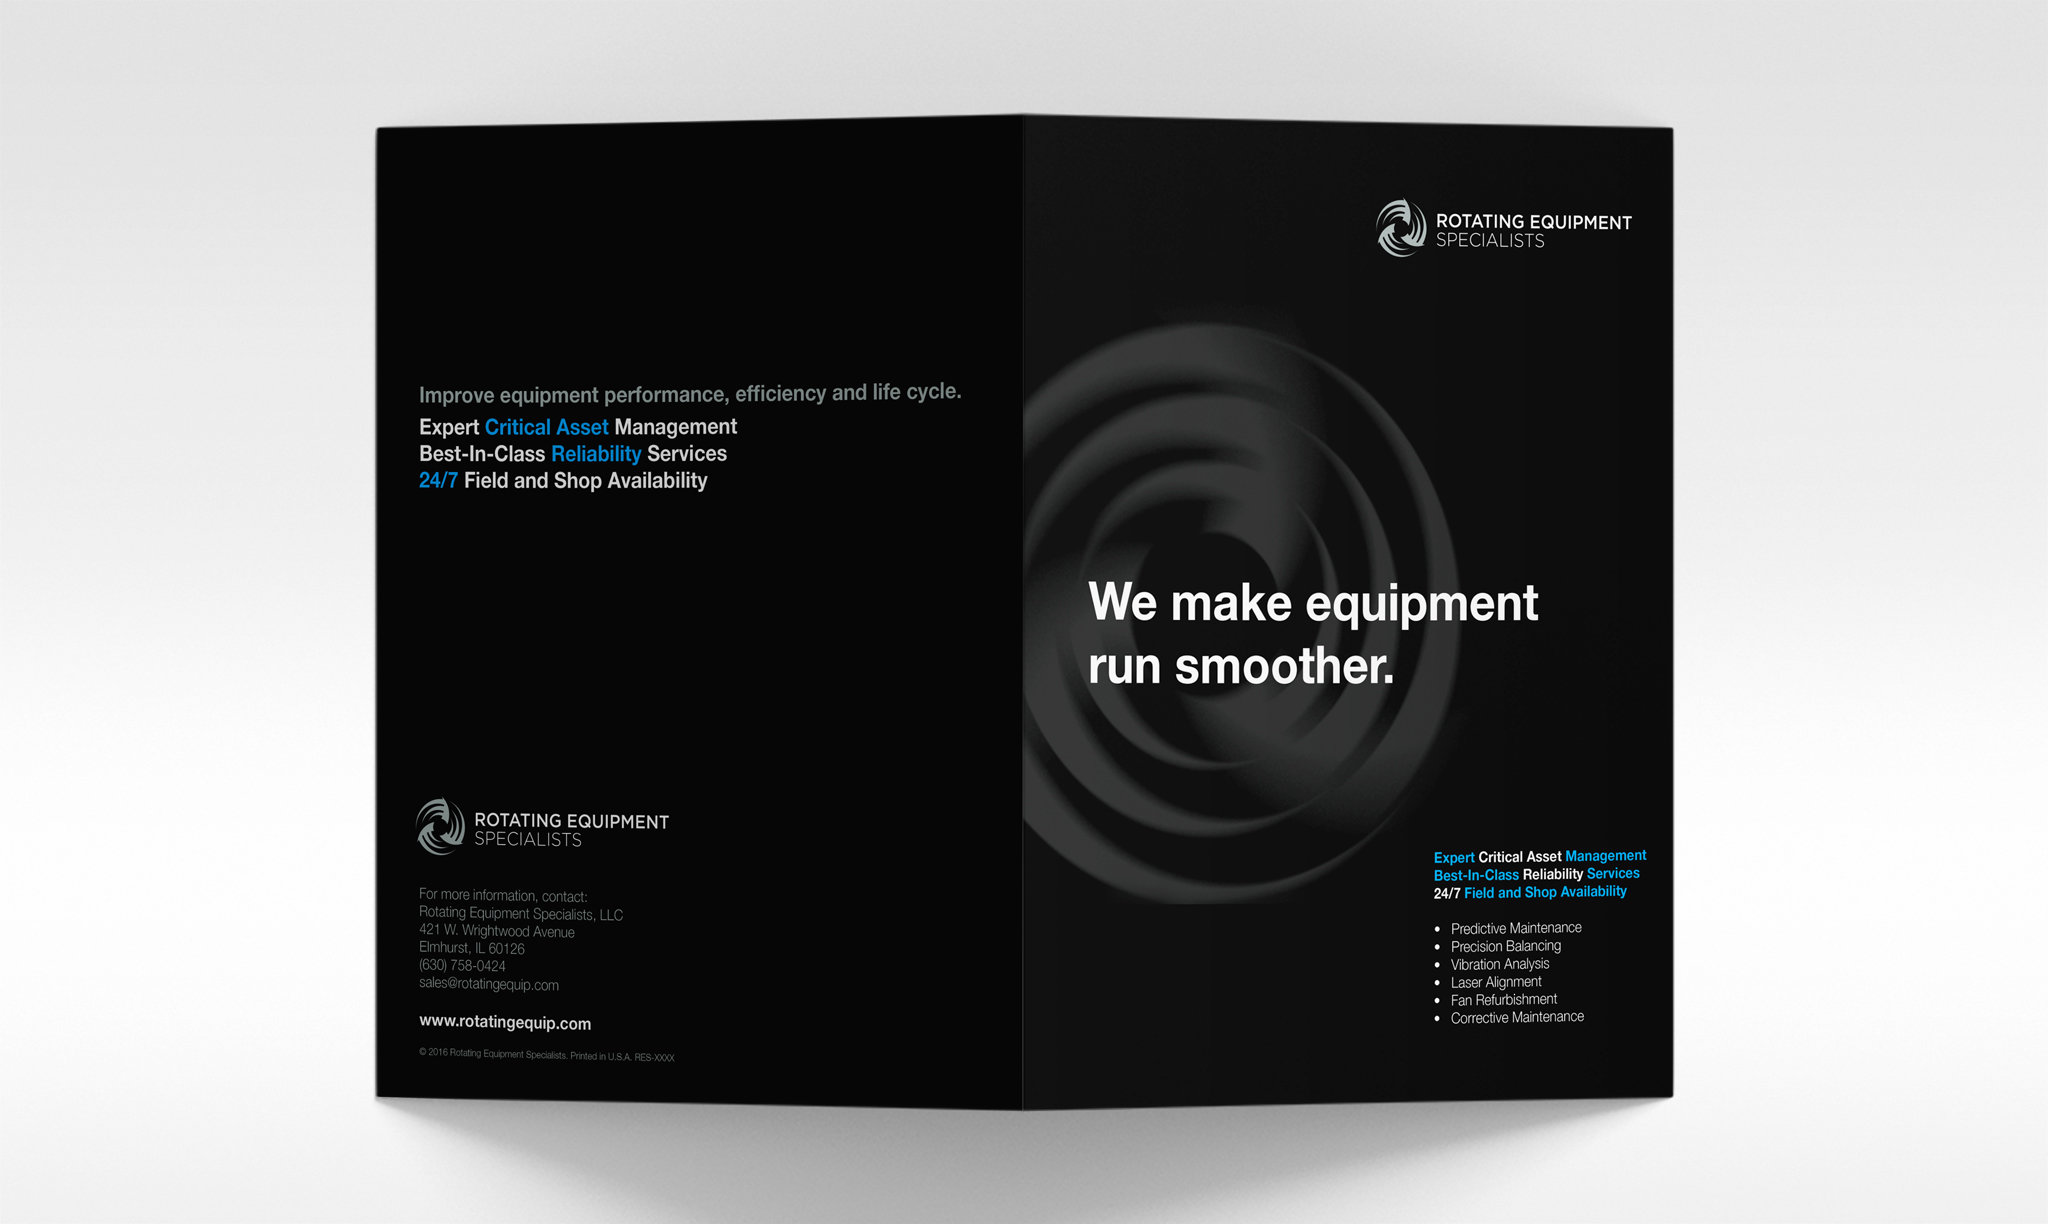 Rotating Equipment Specialists Brochure Cover